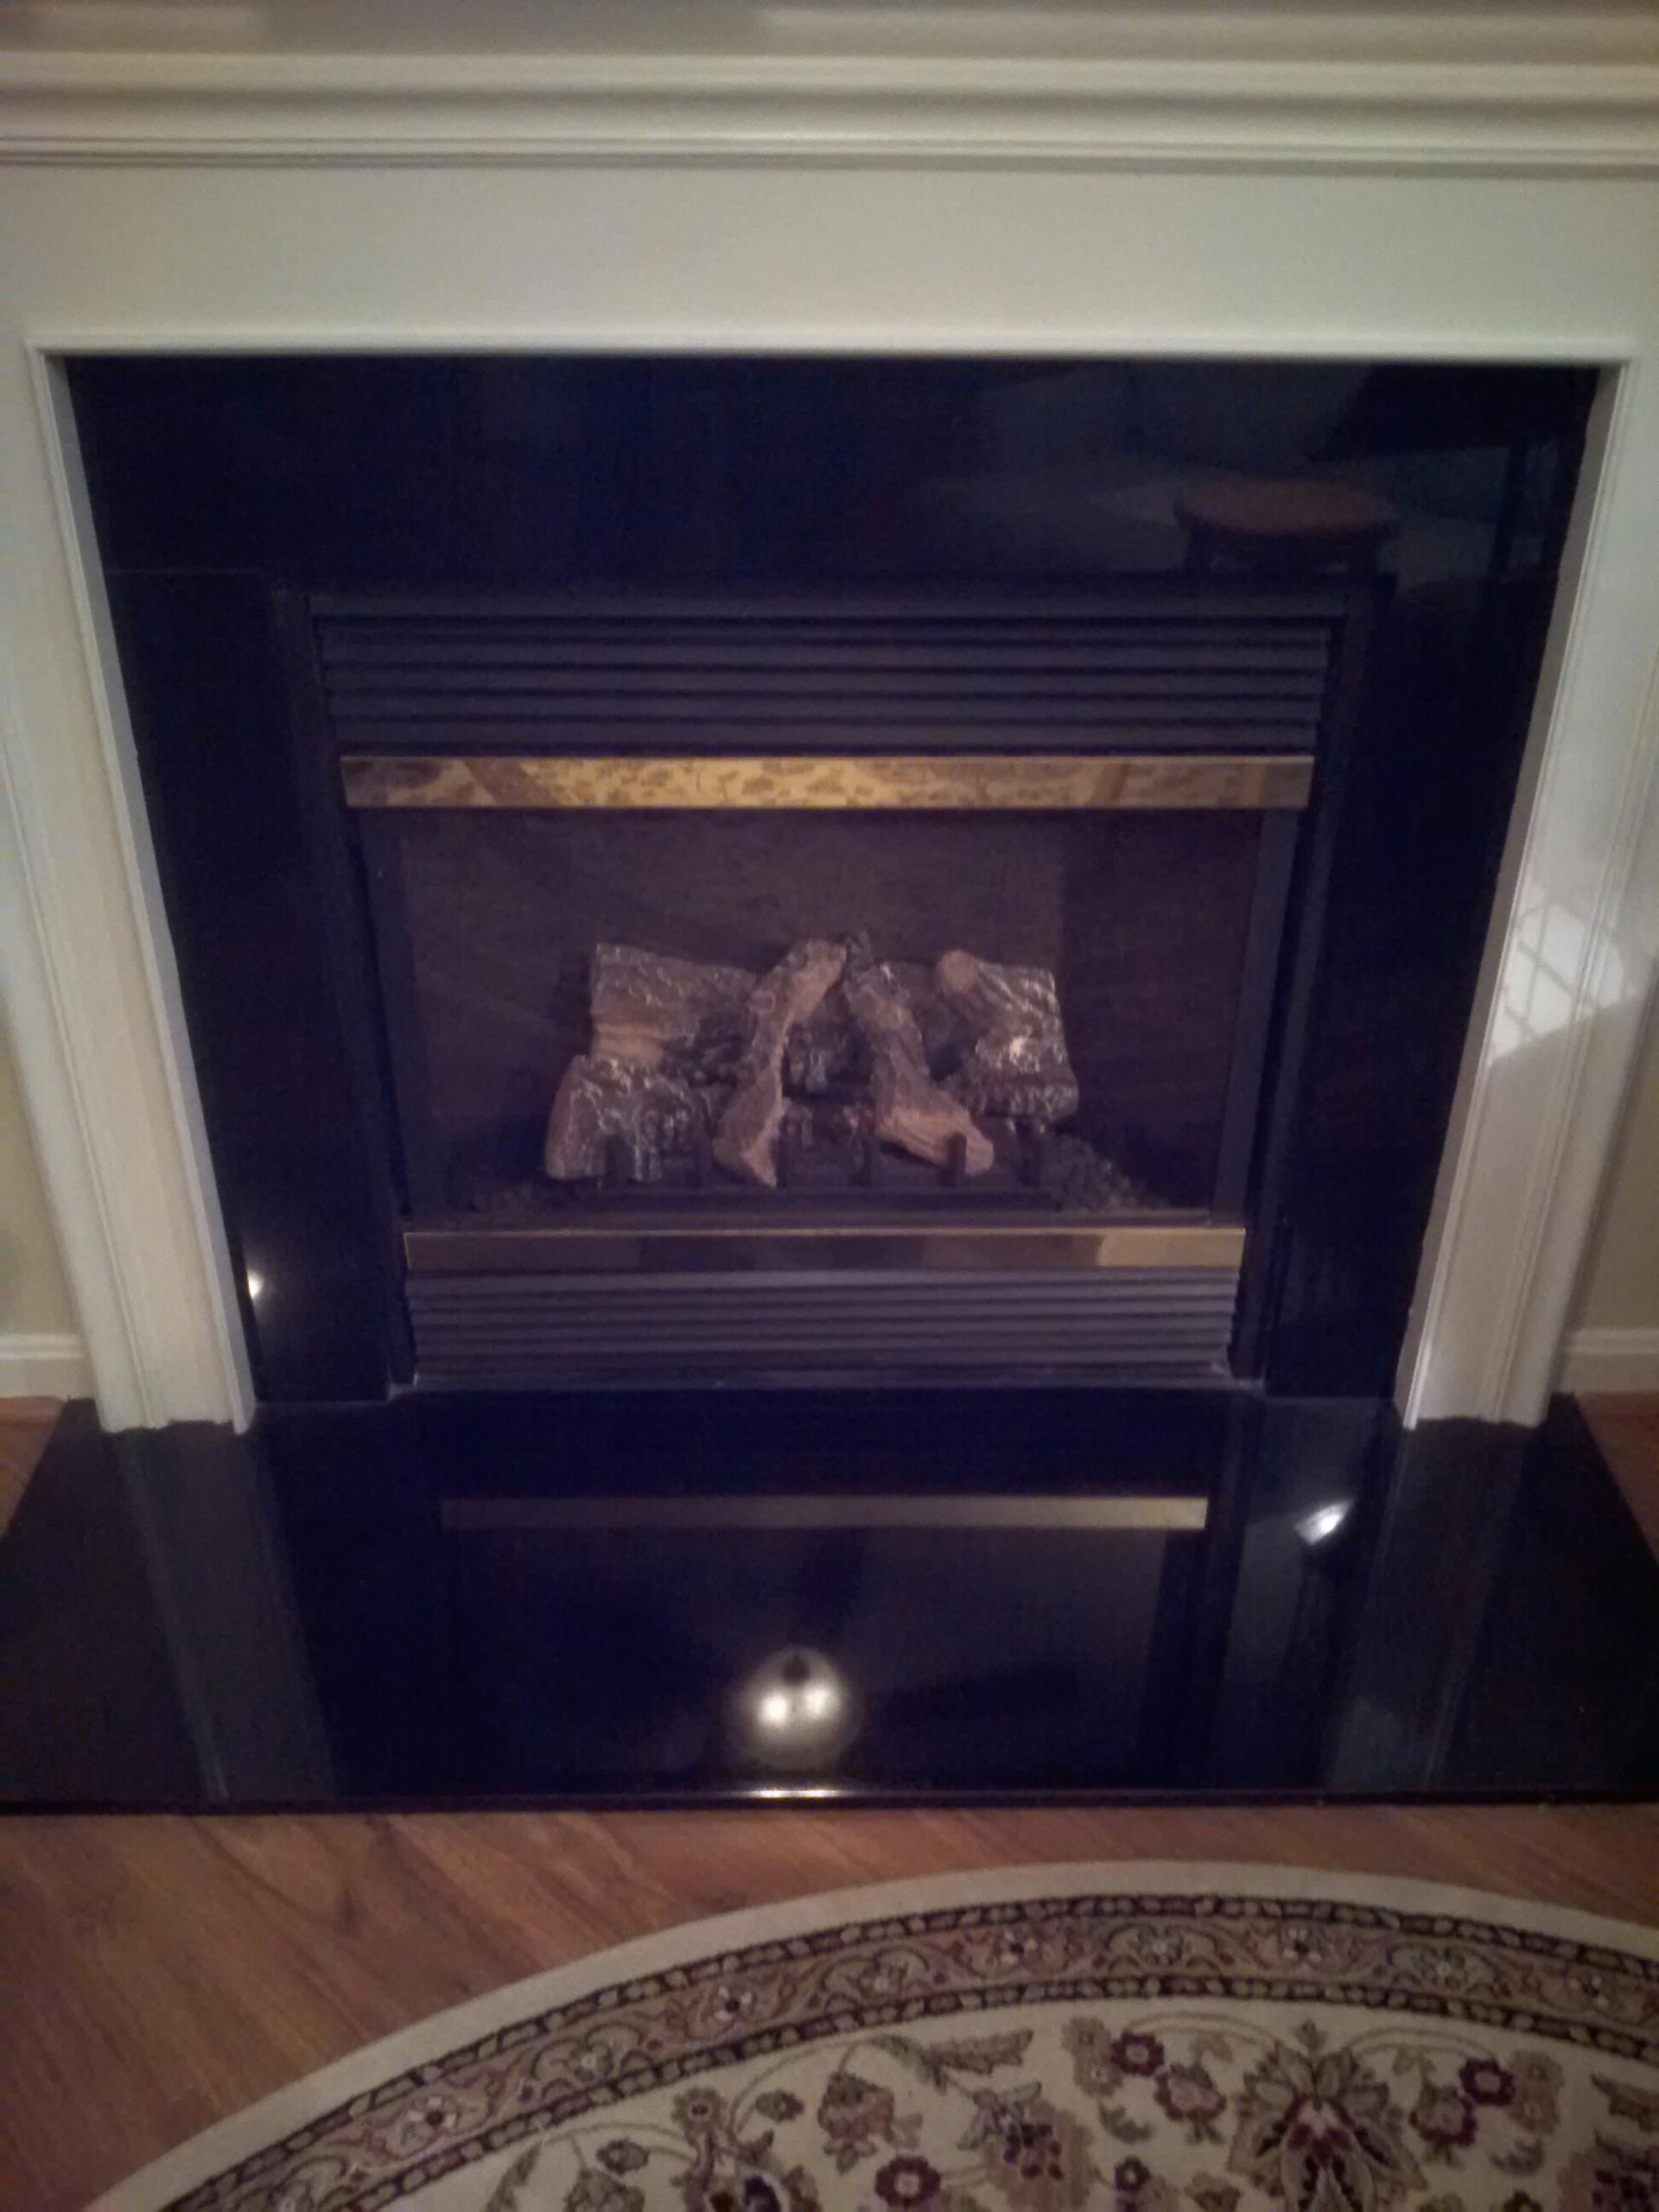 Gambrills, MD - Heat N Glo gas fire place insert & gas log set installation repair service call in Gambrills Maryland 21054